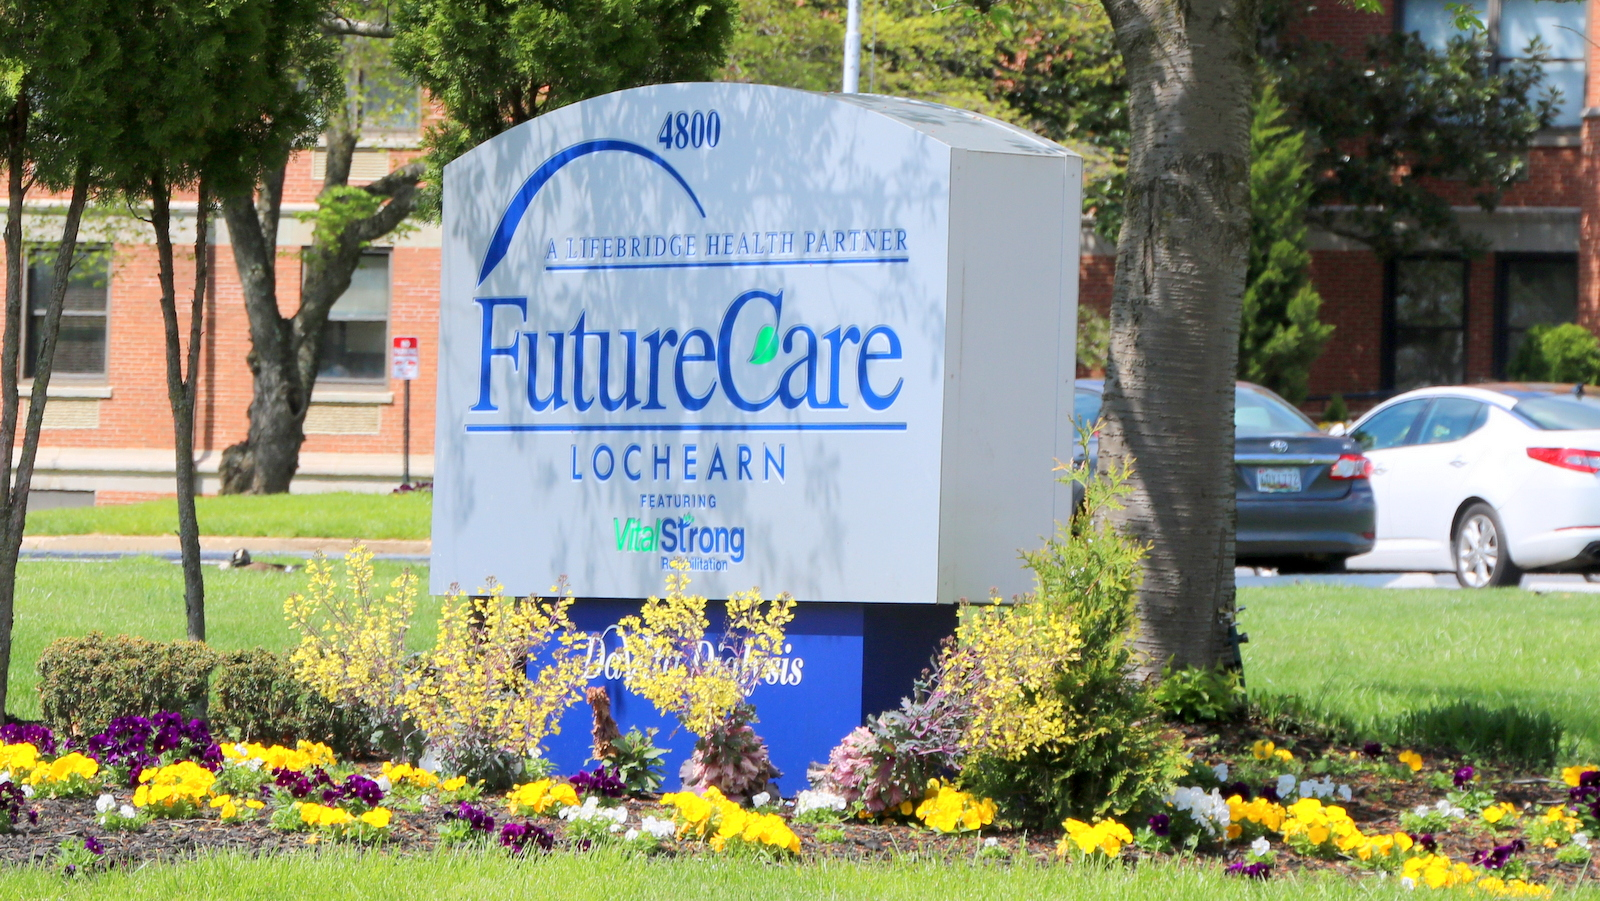 The FutureCare chains's Lochearn location, where a major COVID-19 outbreak has been reported. (Louis Krauss)